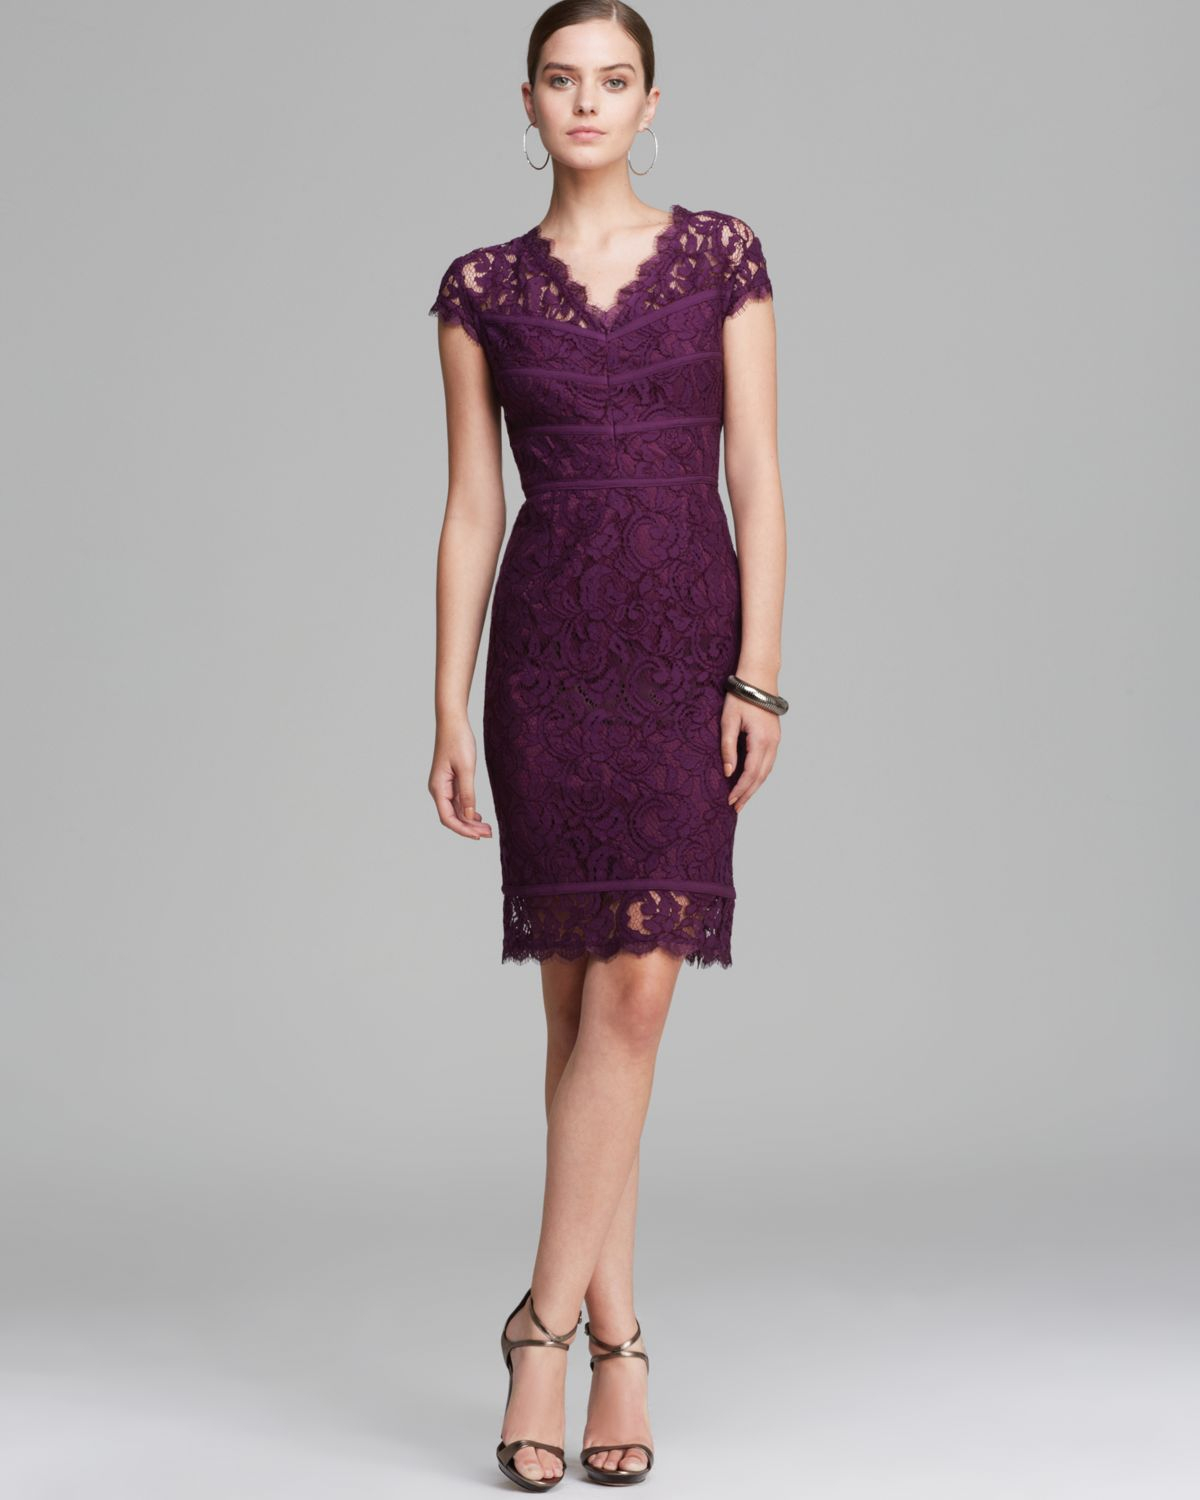 Adrianna Papell Dress Cap Sleeve Lace in Purple - Lyst